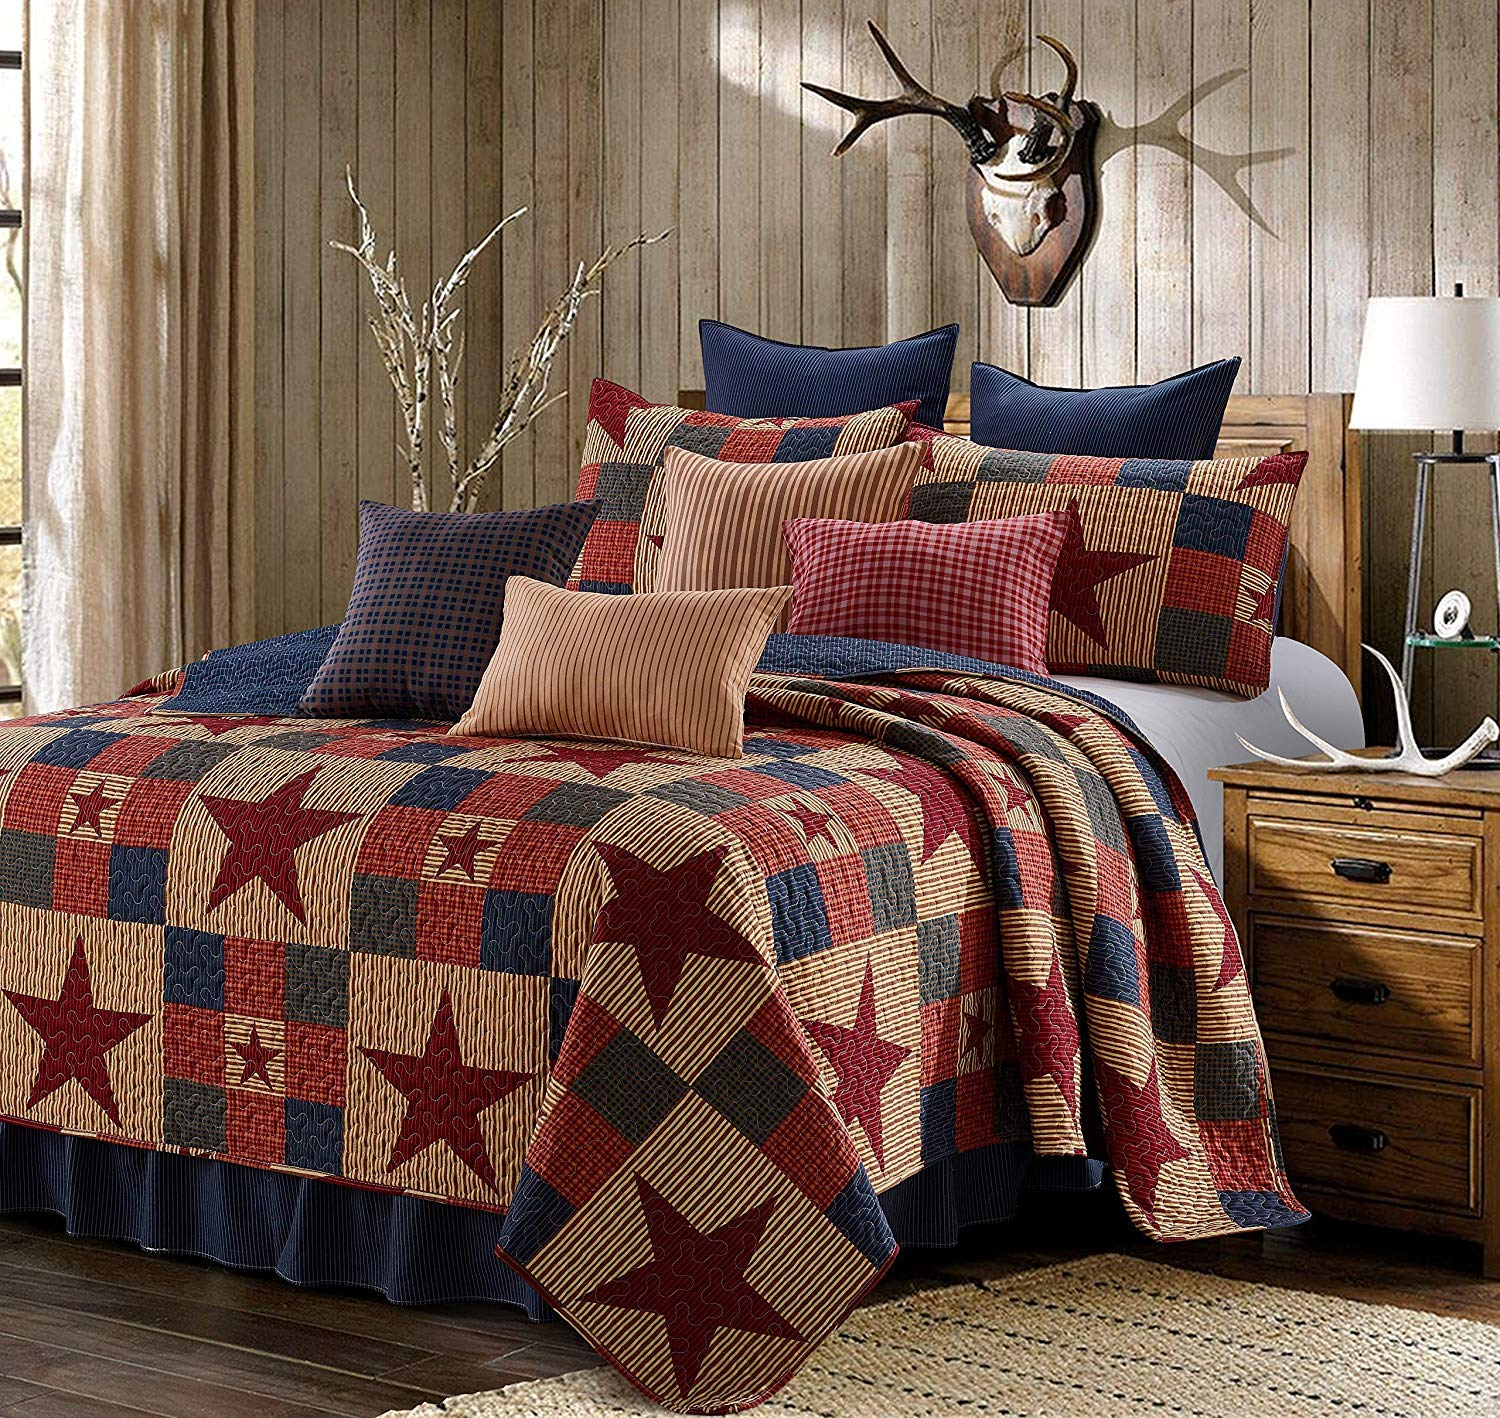 Virah Bella 3 Piece Mountain Cabin Stars Rustic 3 Piece Quilt and Sham Set (Red, King